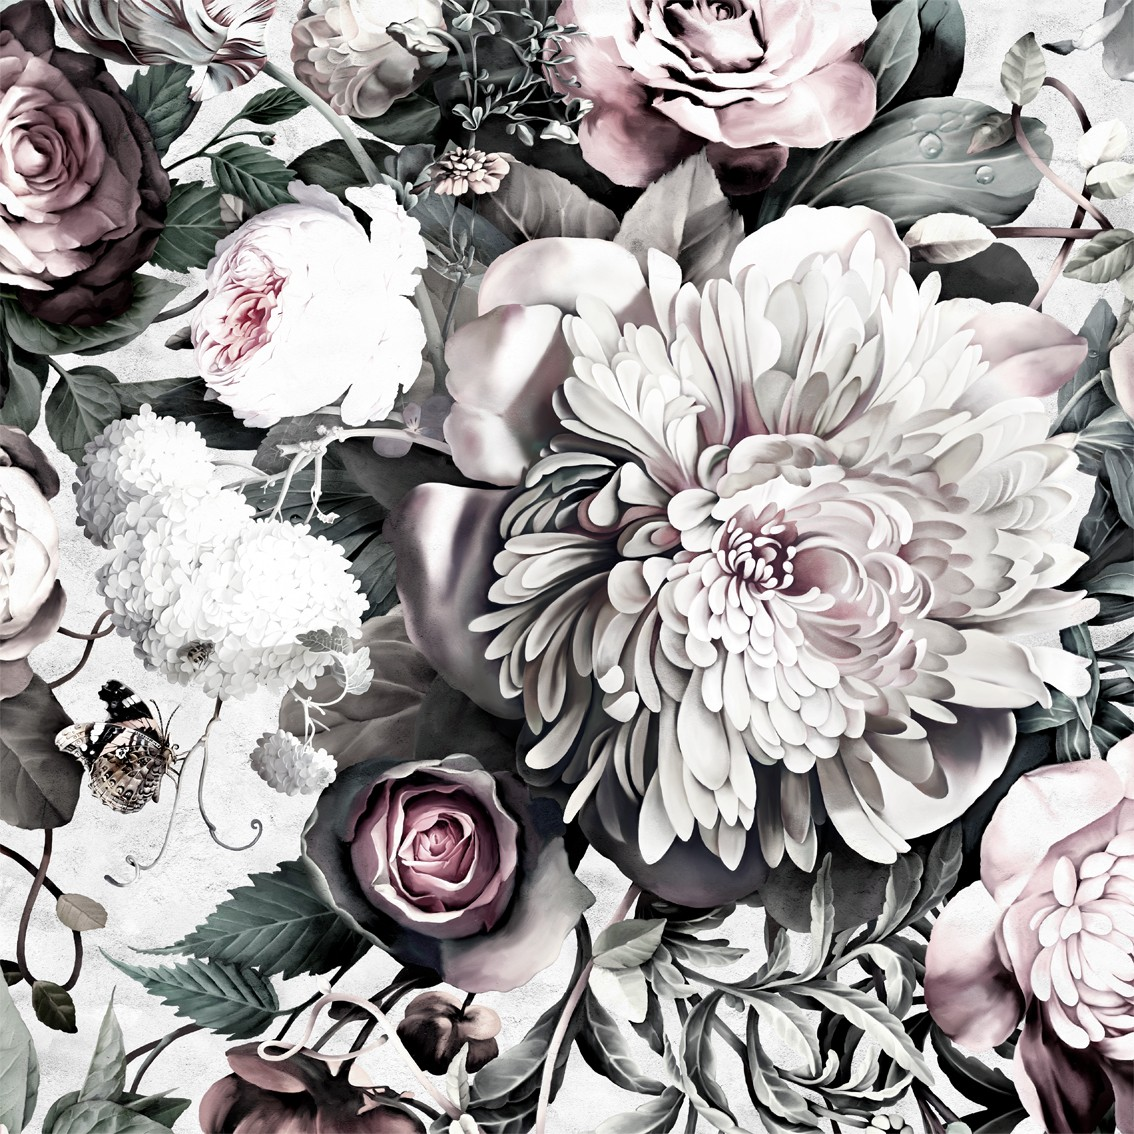 Black floral print wallpaper dark floral wallpaper by ellie cashman -  To Wallpaper The Main Focal Wall In Jenn S Office That You See Upon Walking In Her Space We Decided On A Bold Floral Print Ellie Cashman S Dark Floral